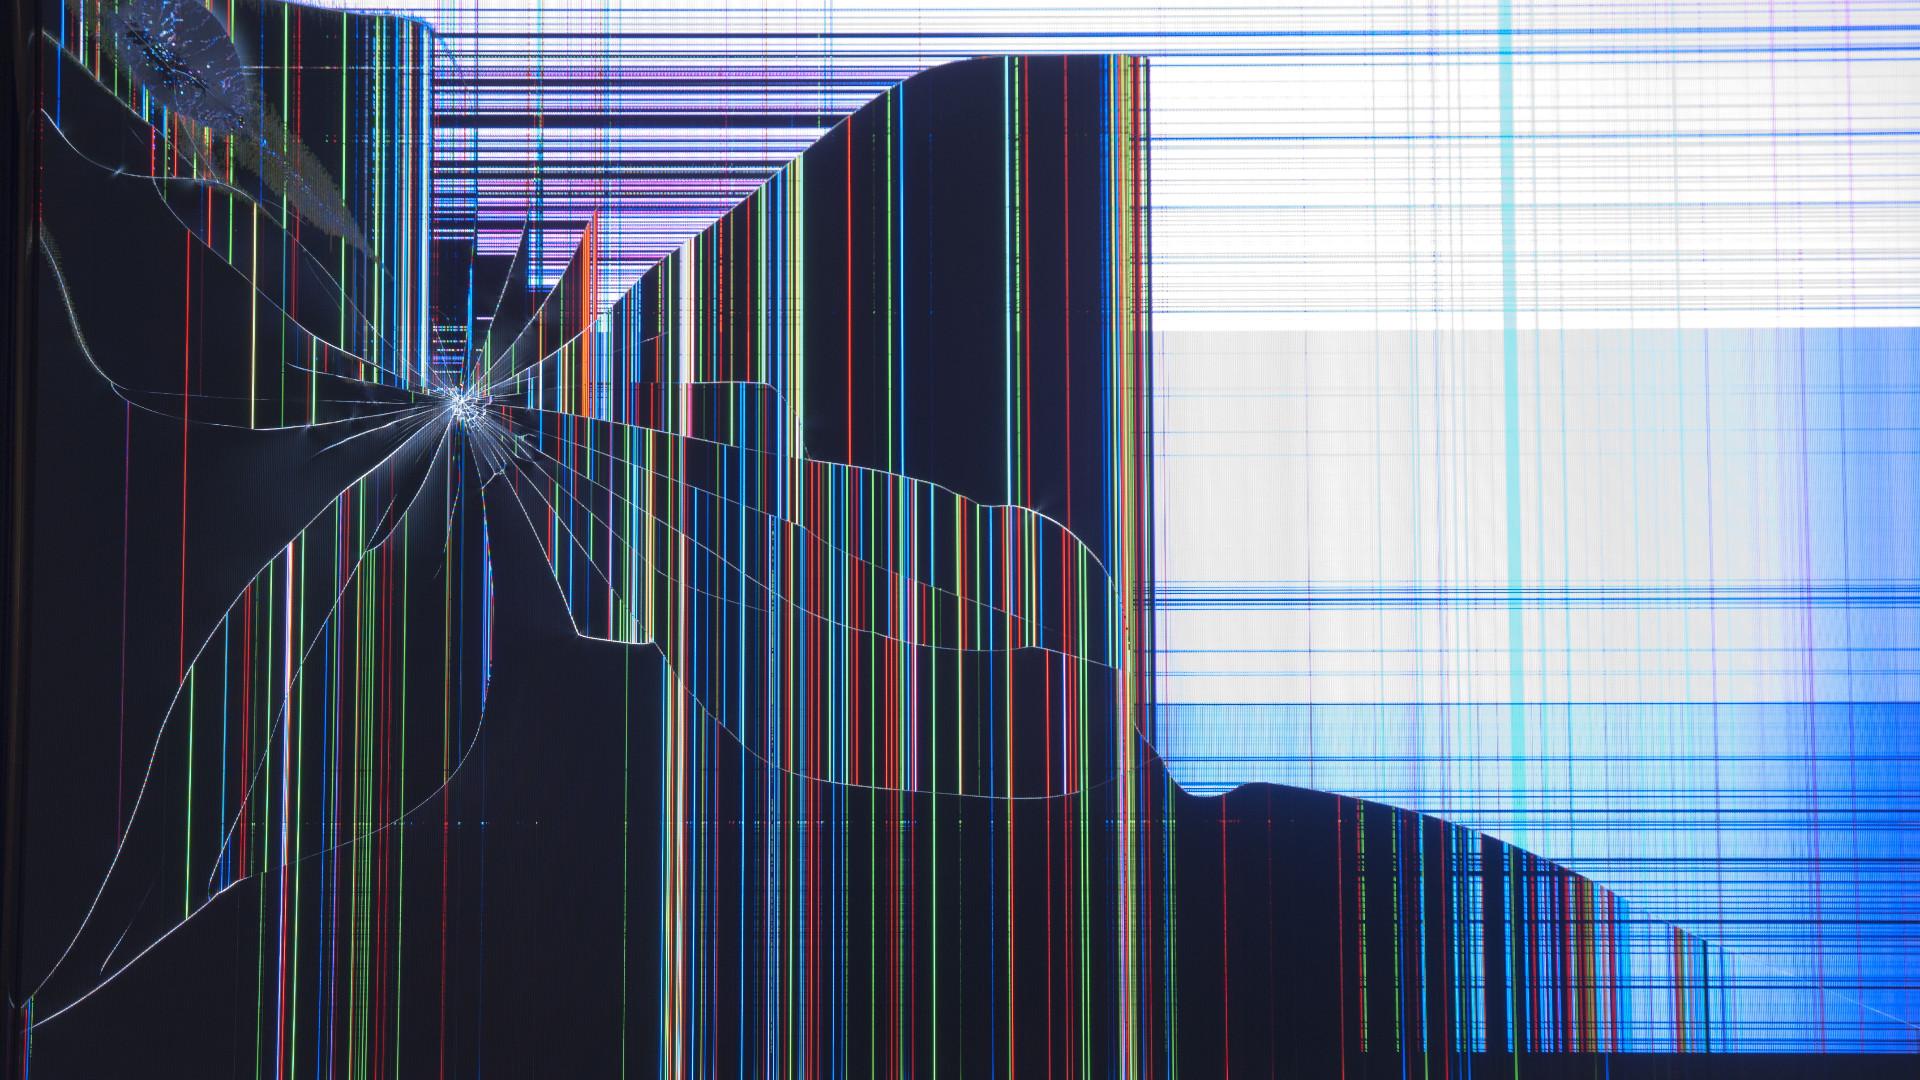 Broken TV Screen Prank Download 1920x1080